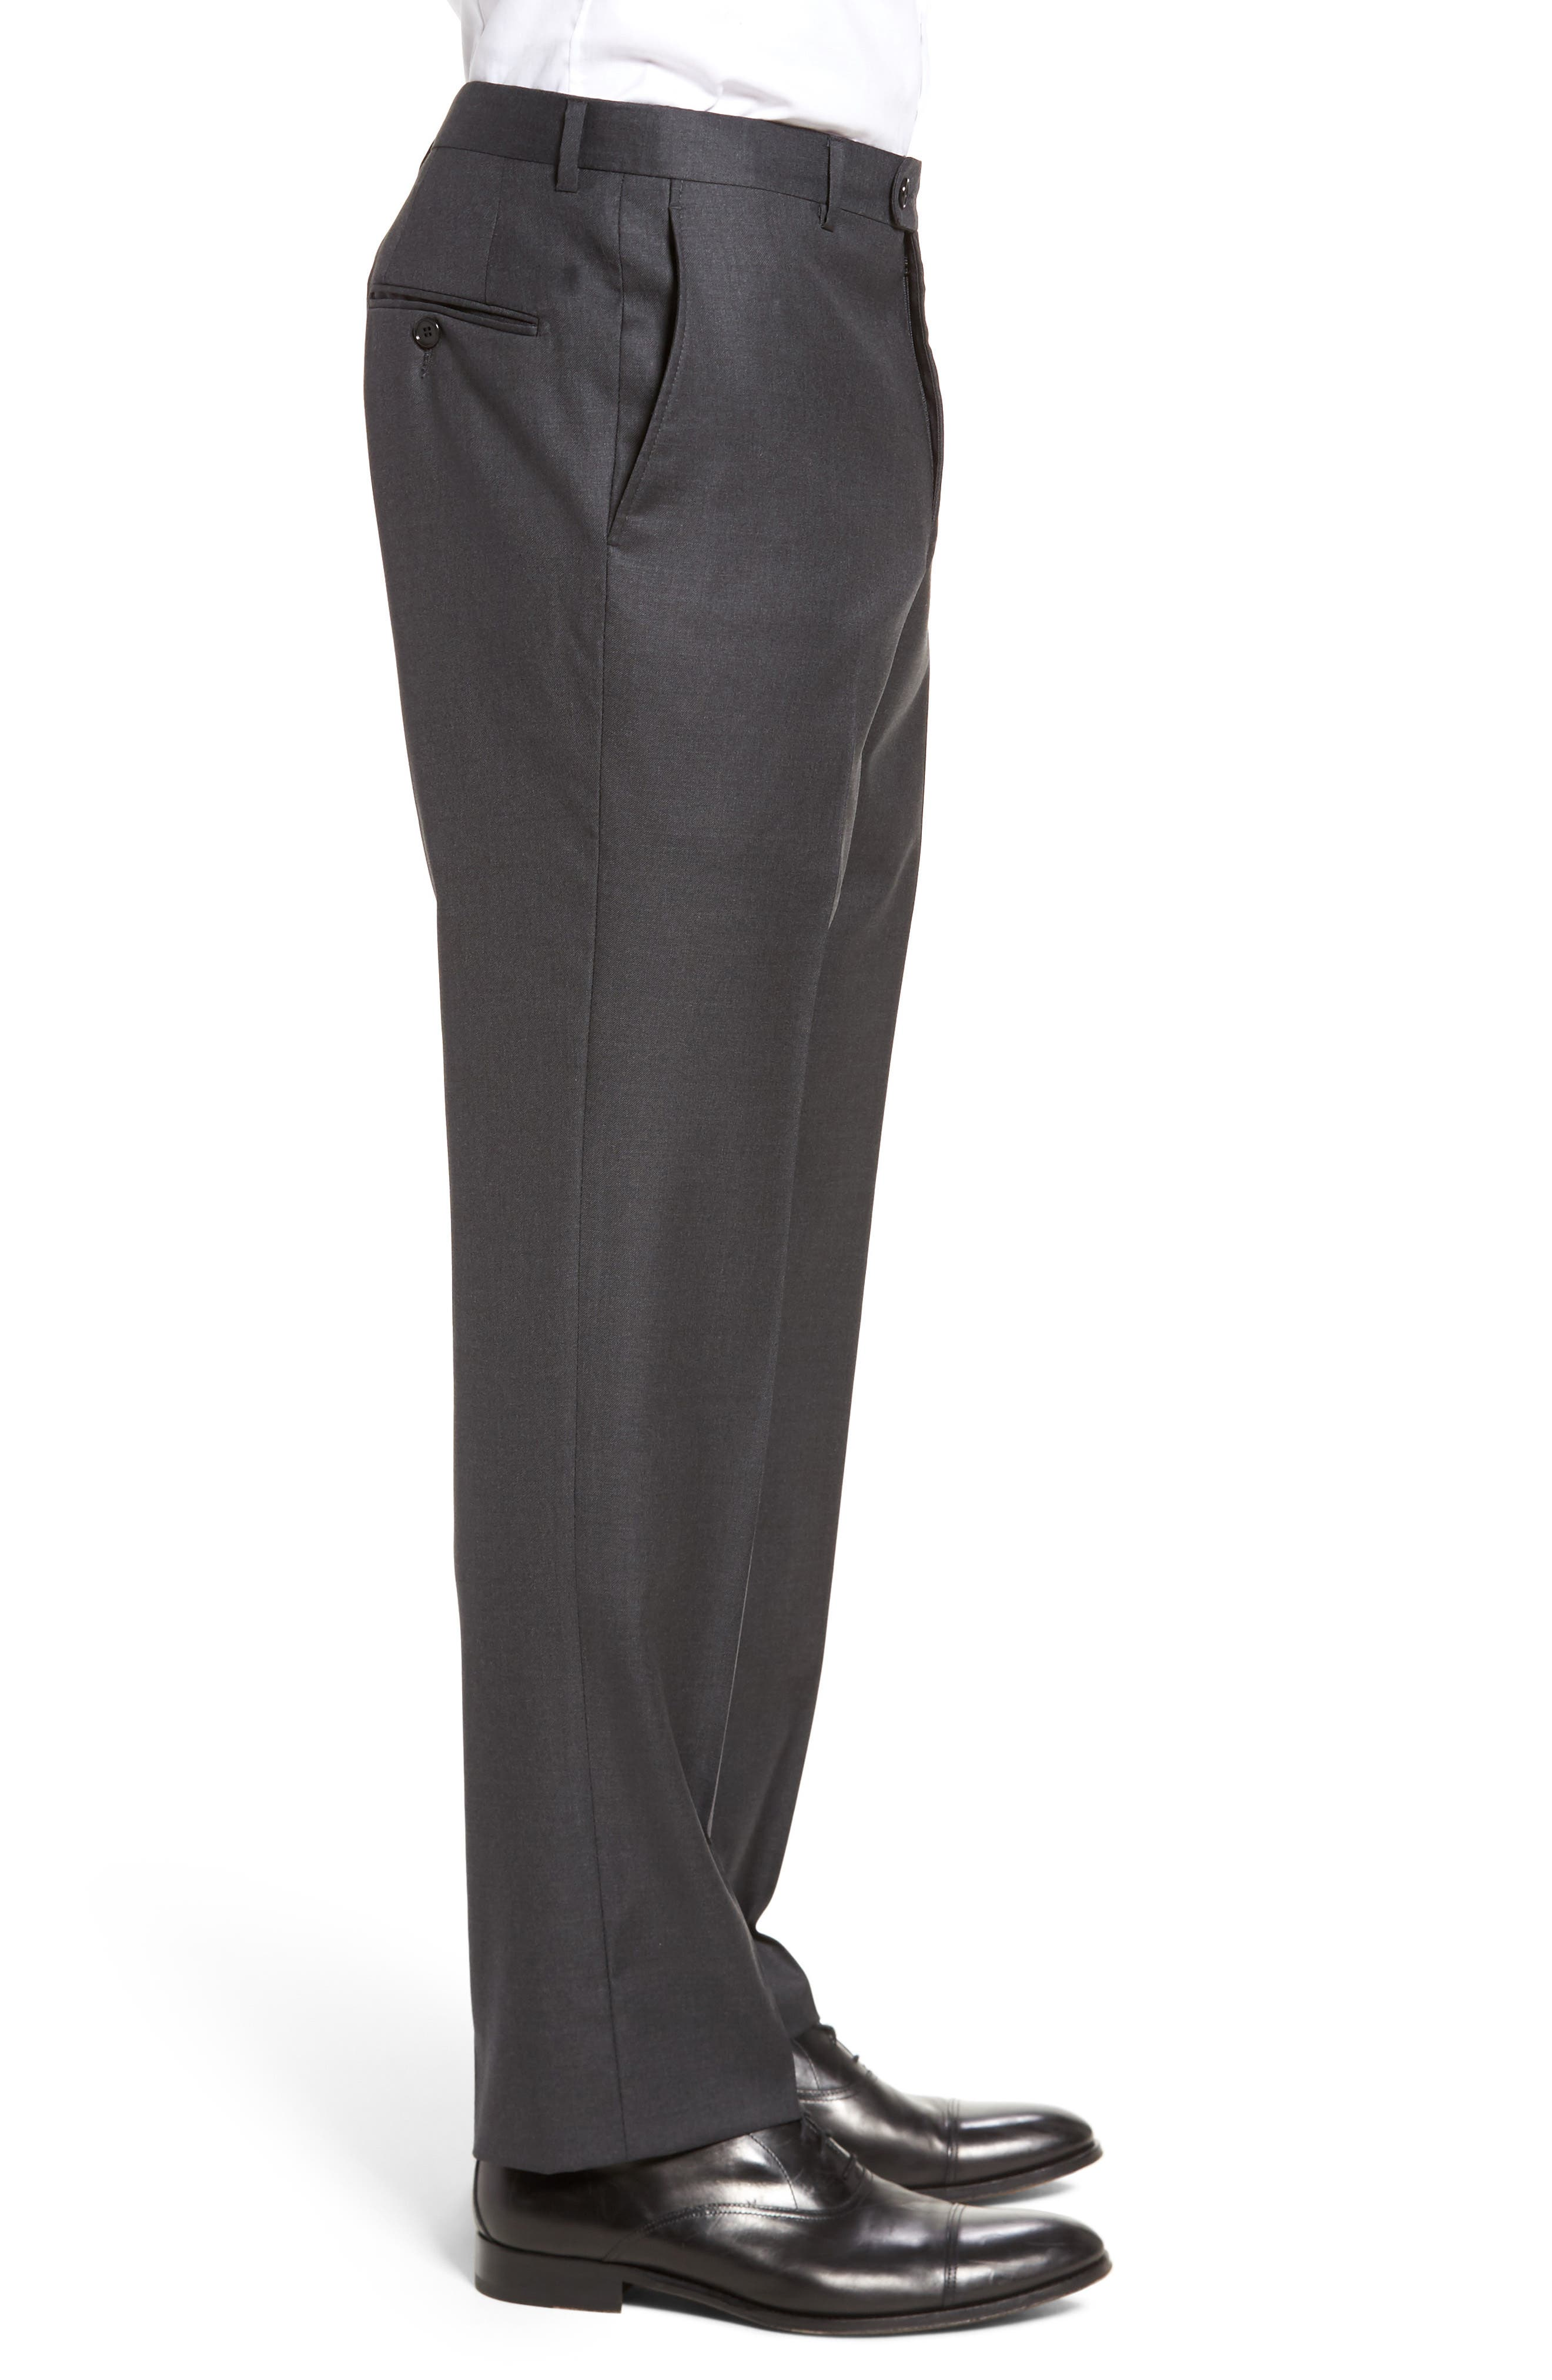 Classic B Fit Flat Front Solid Wool Trousers,                             Alternate thumbnail 4, color,                             CHARCOAL SHARKSKIN